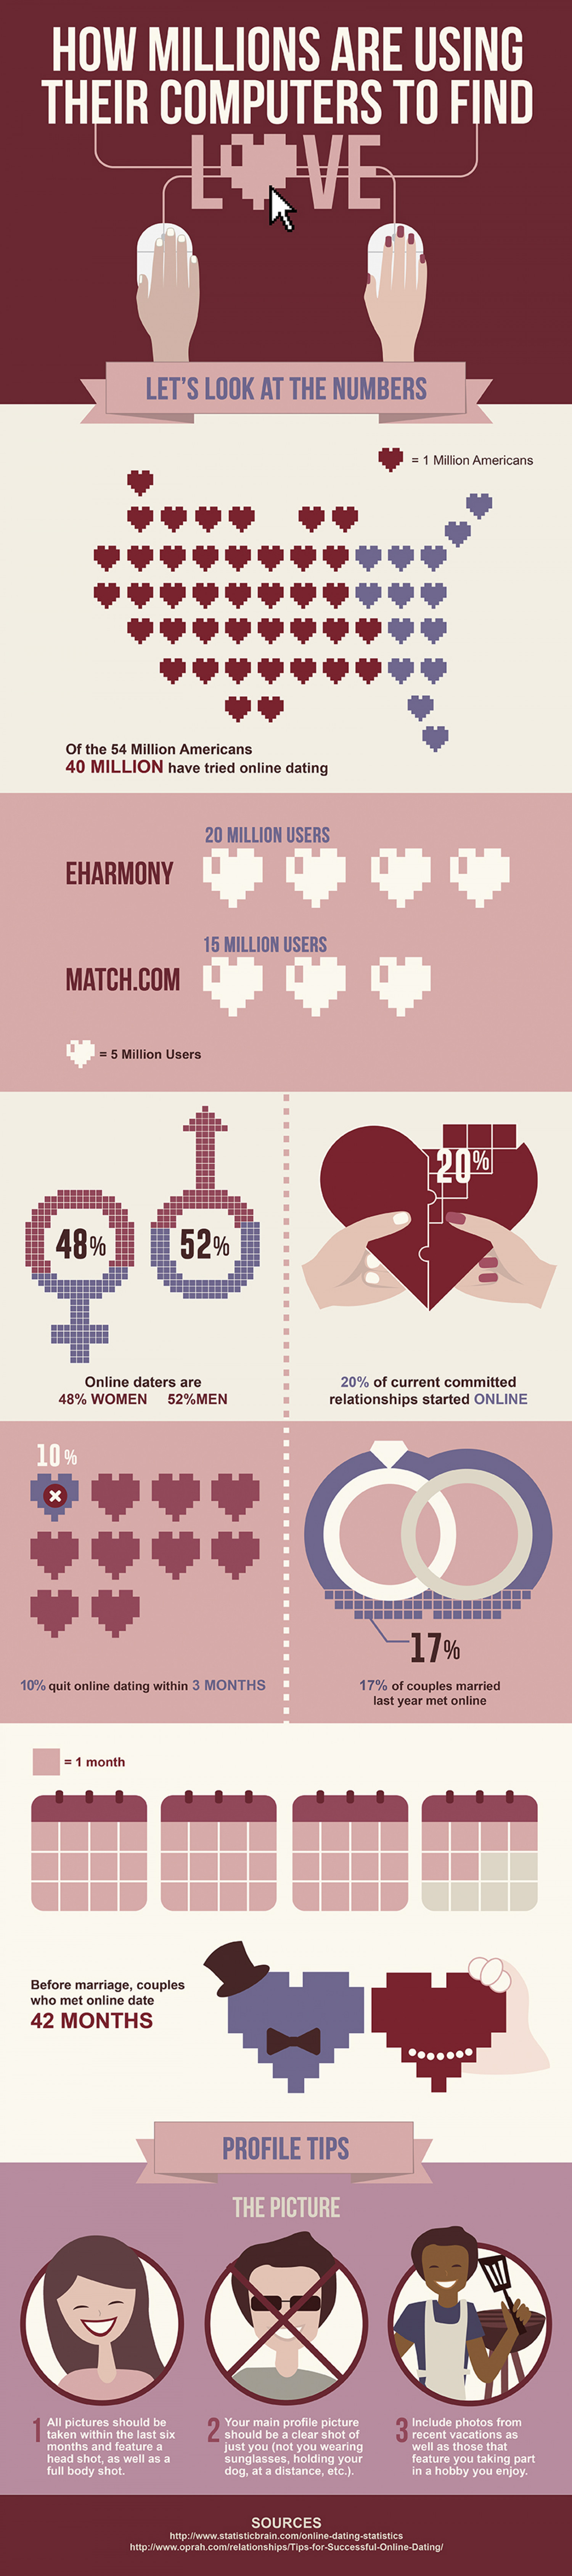 How Million People Use Their Computers To Find Love Infographic